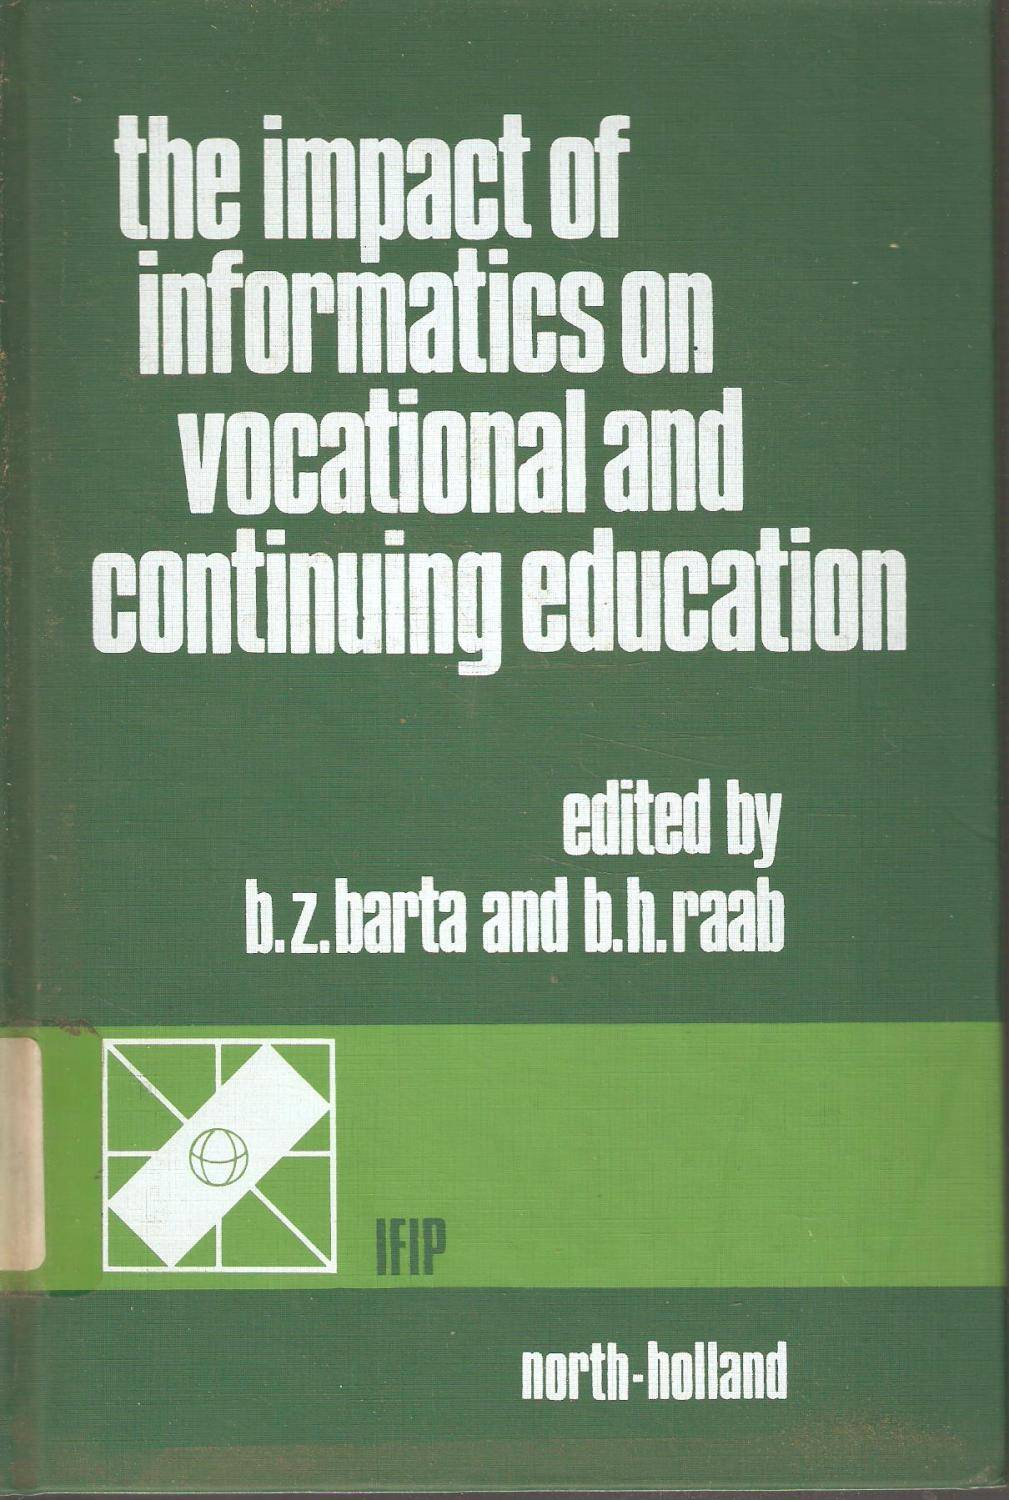 The Impact of Informatics on Vocational and Continuing Education. Barta, B Z & Raab, B H [Very Good] [Hardcover]